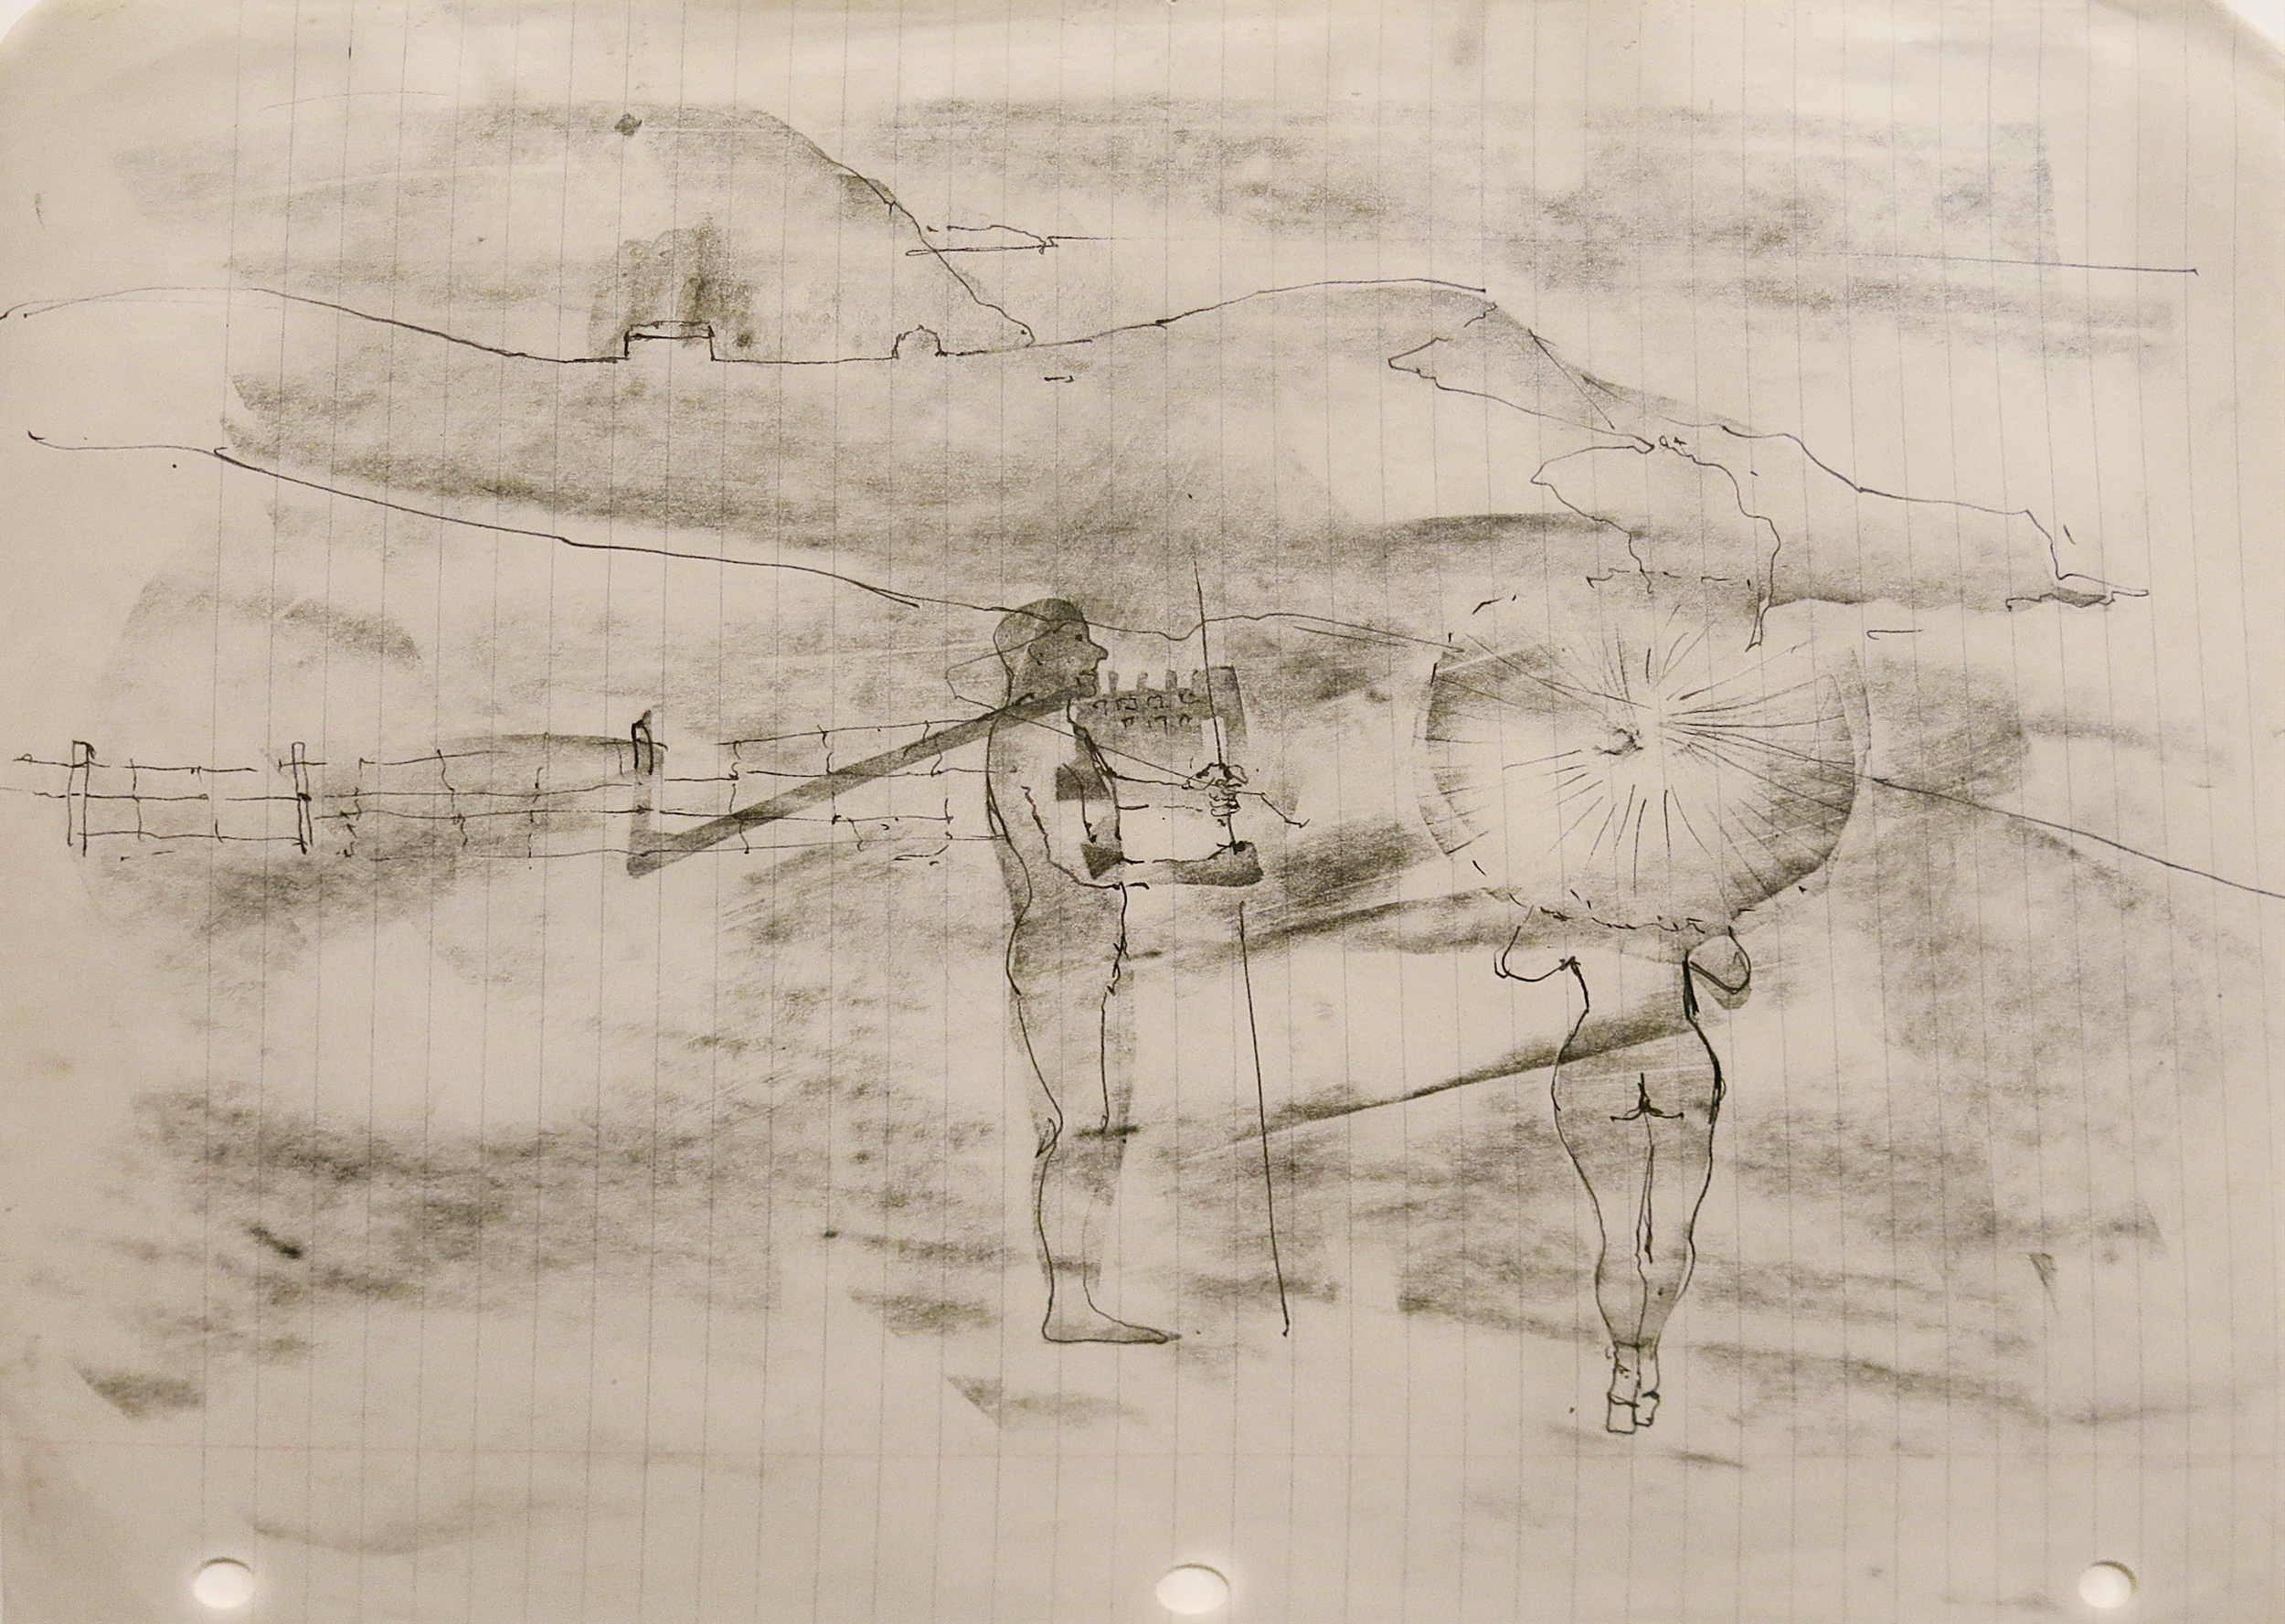 June Leaf, Woman with parasol, 1974, Pencil and ink on paper, 8.5h x 11w in.